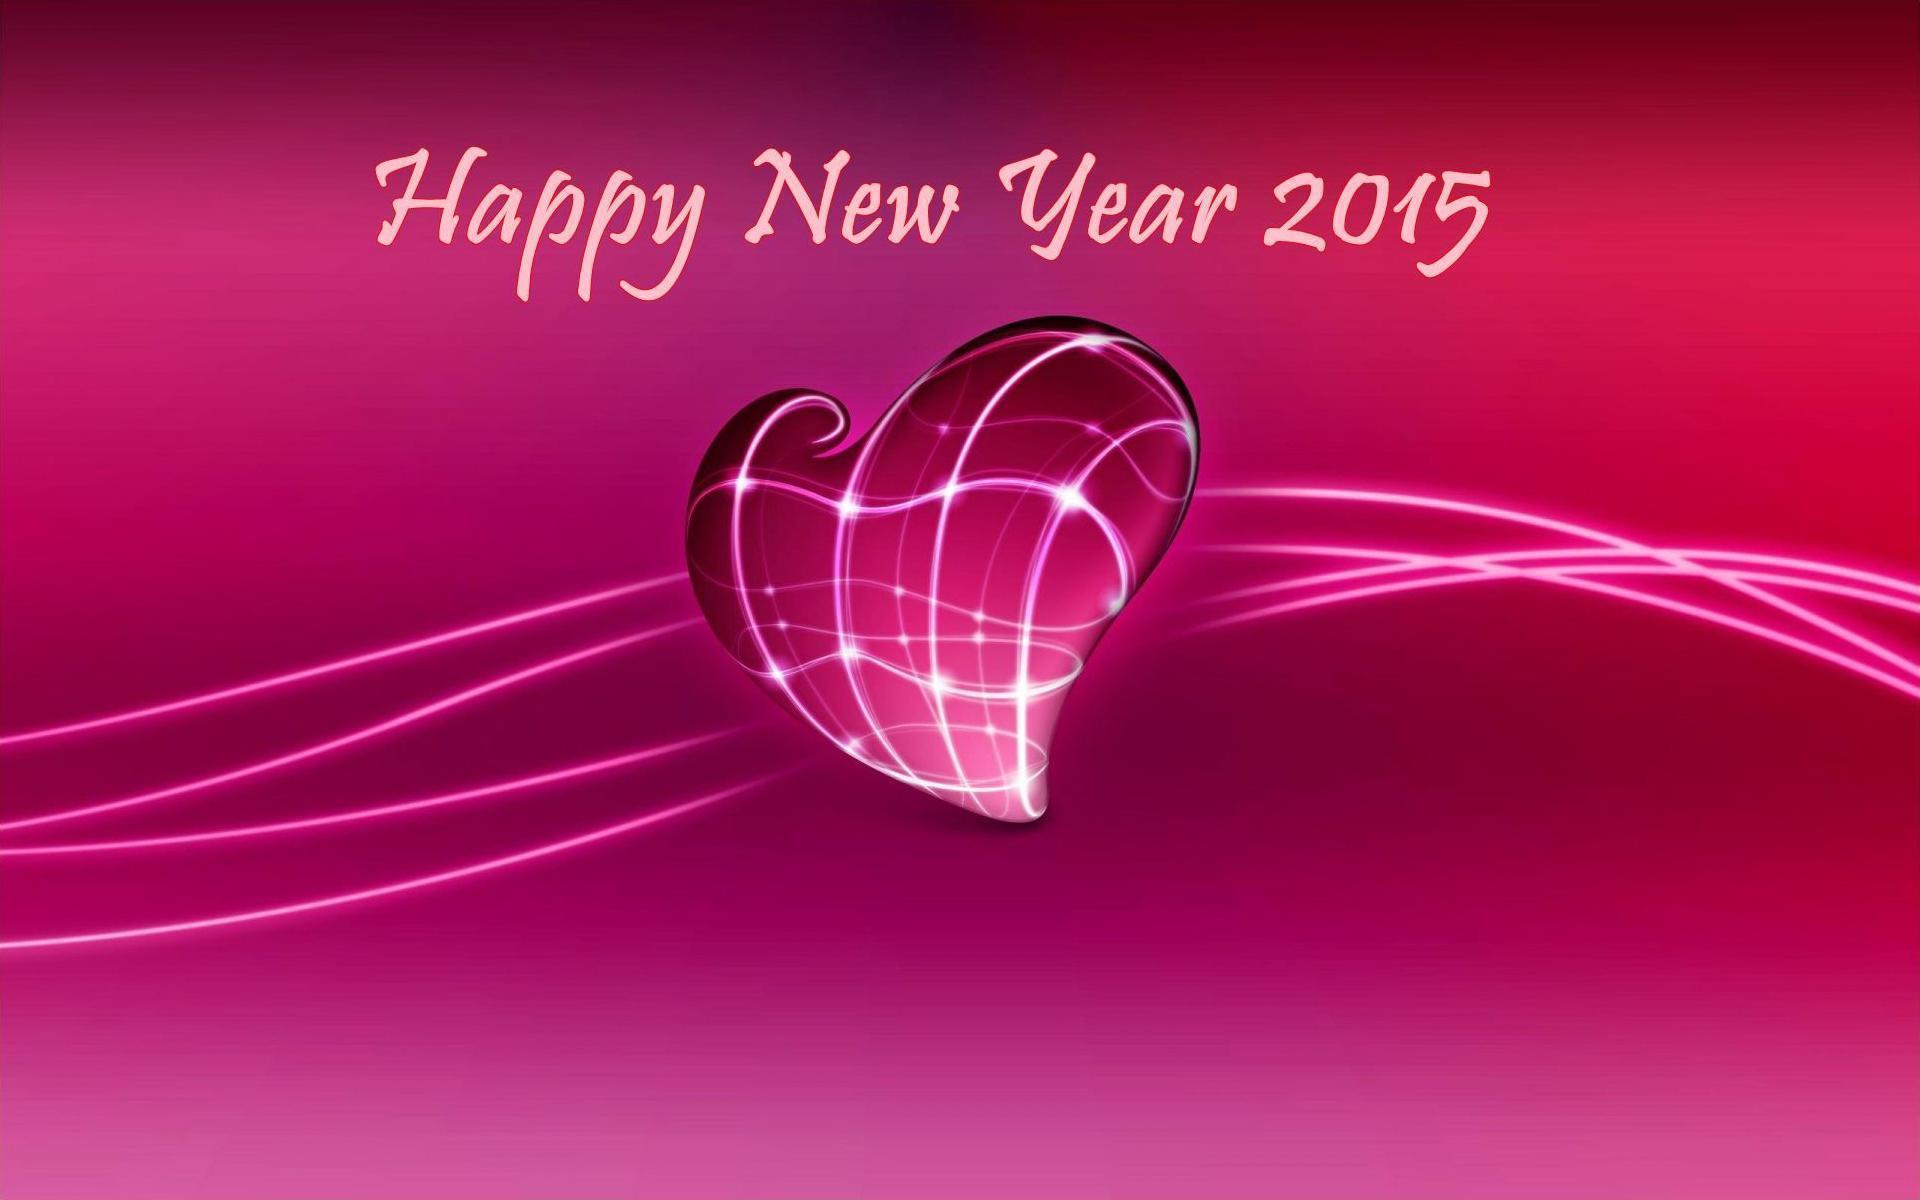 New Year 2015 HD Desktop Wallpapers for Widescreen, High